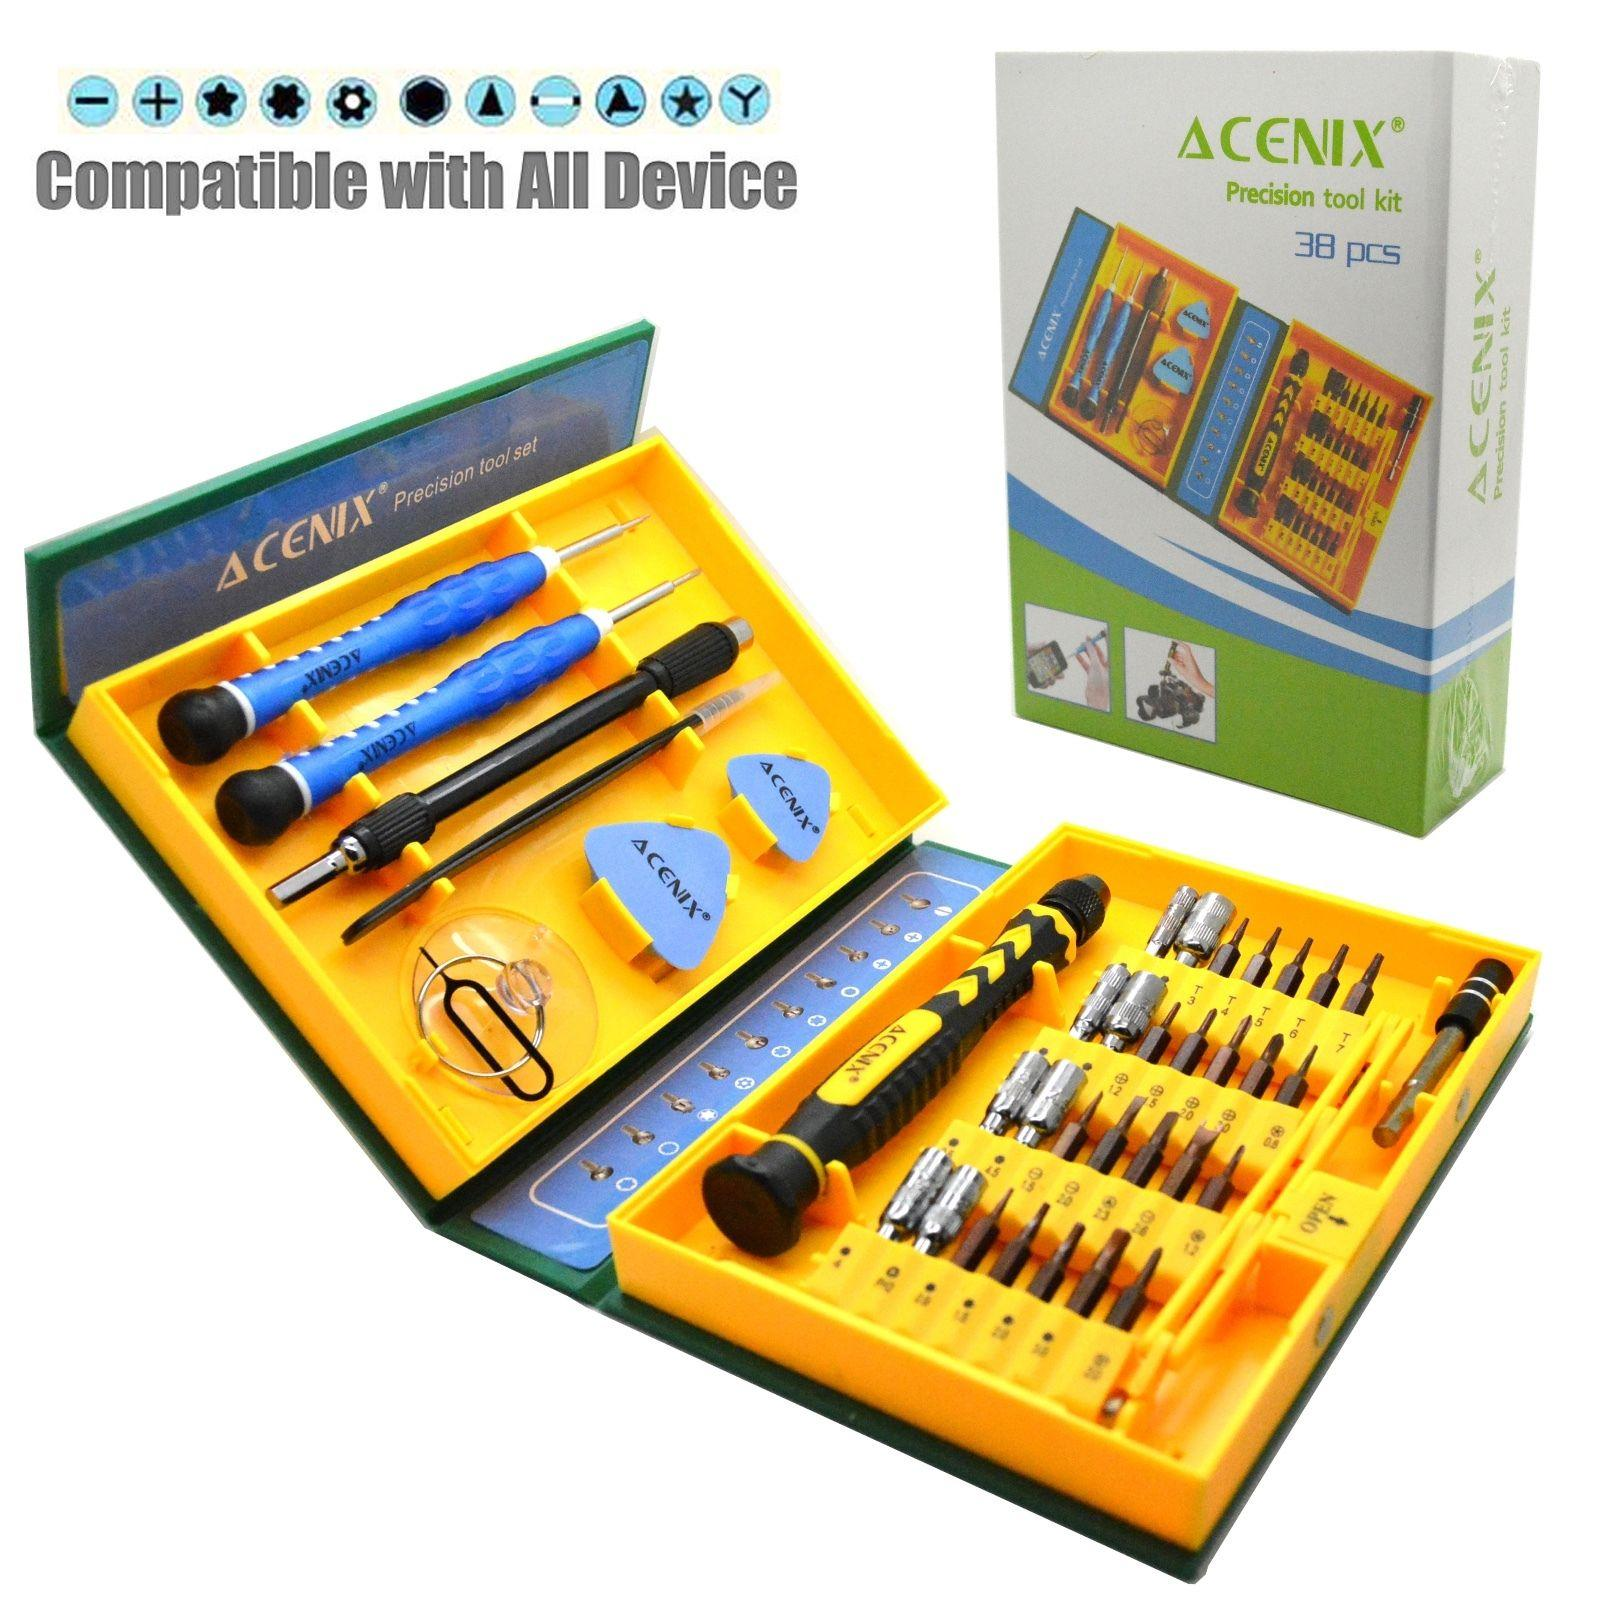 a263ceccdc6 2019 Professional Flexible 38 In1 Precision Screwdriver Set Car Mobile  Phone PC Tablet Repair Kit Tools DHL From Dhgatetop company